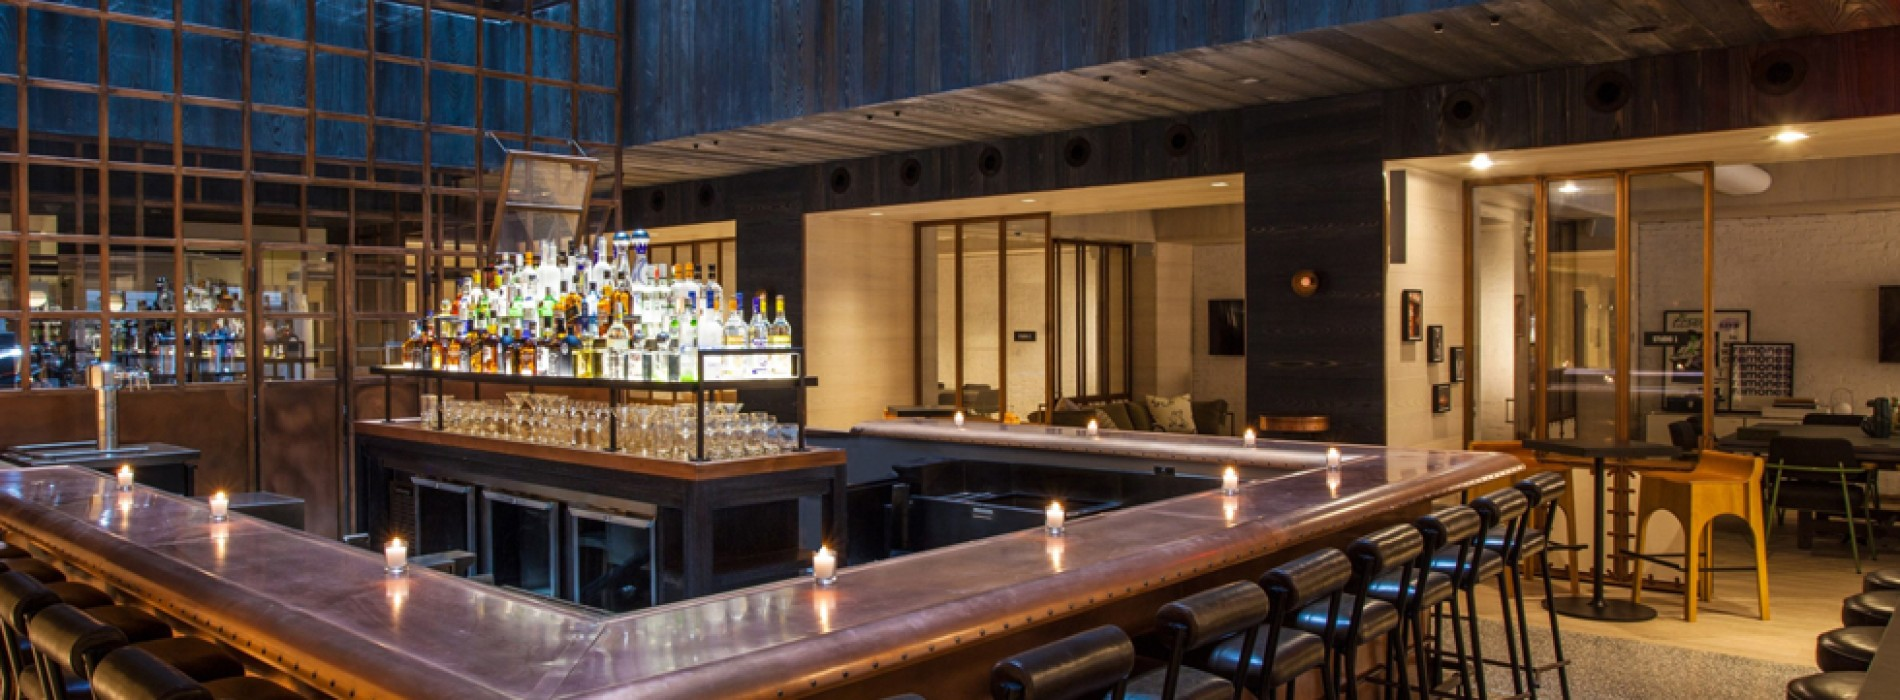 """Discover the """"New Midtown"""" – the New Place to be in NYC!"""